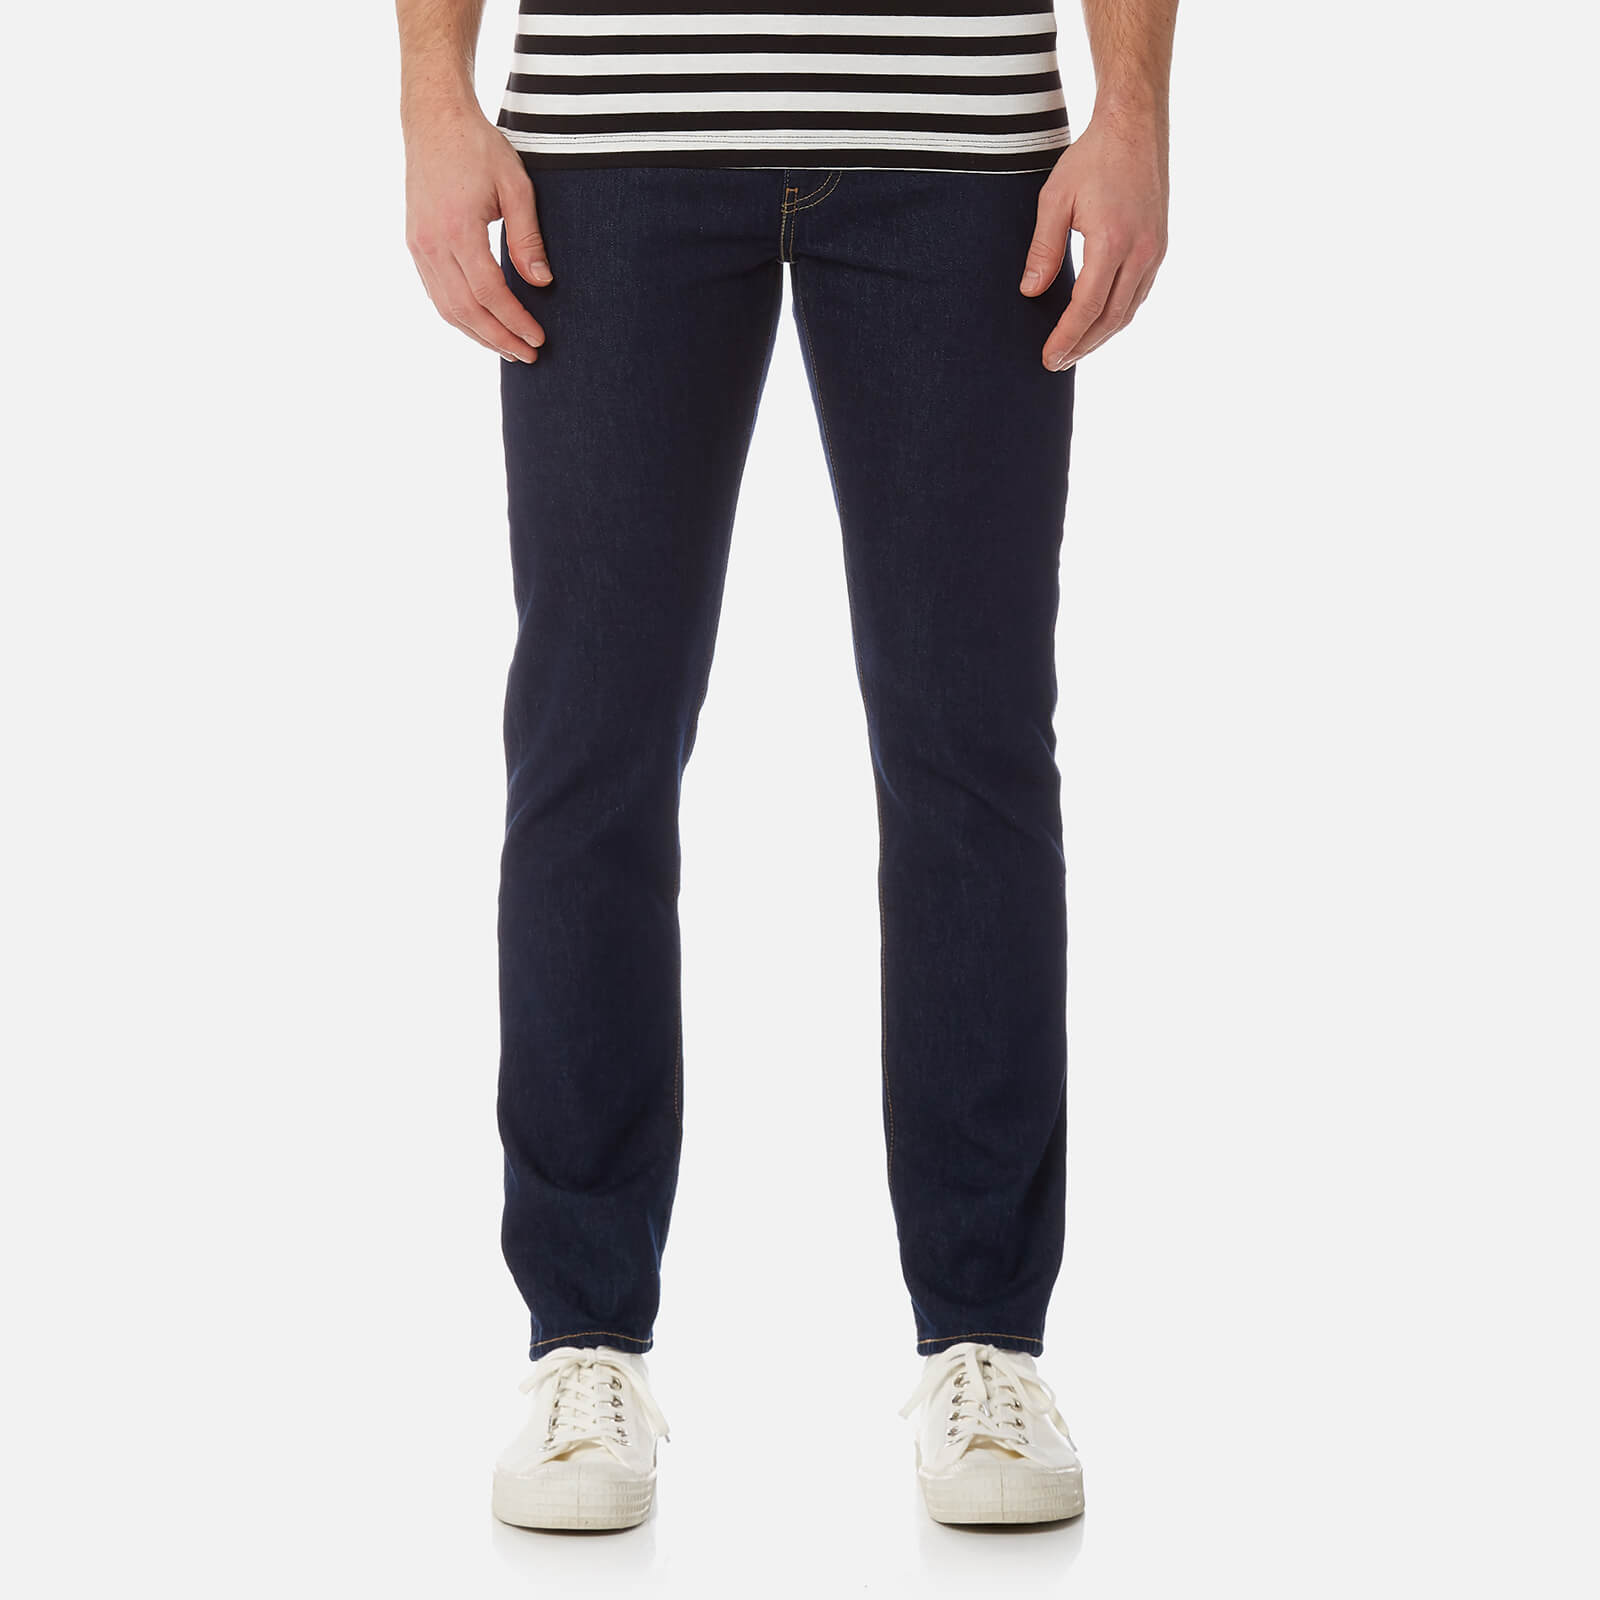 55fcf36b452 Levi's Men's 502 Regular Taper Jeans - Chain Rinse - Free UK Delivery over  £50